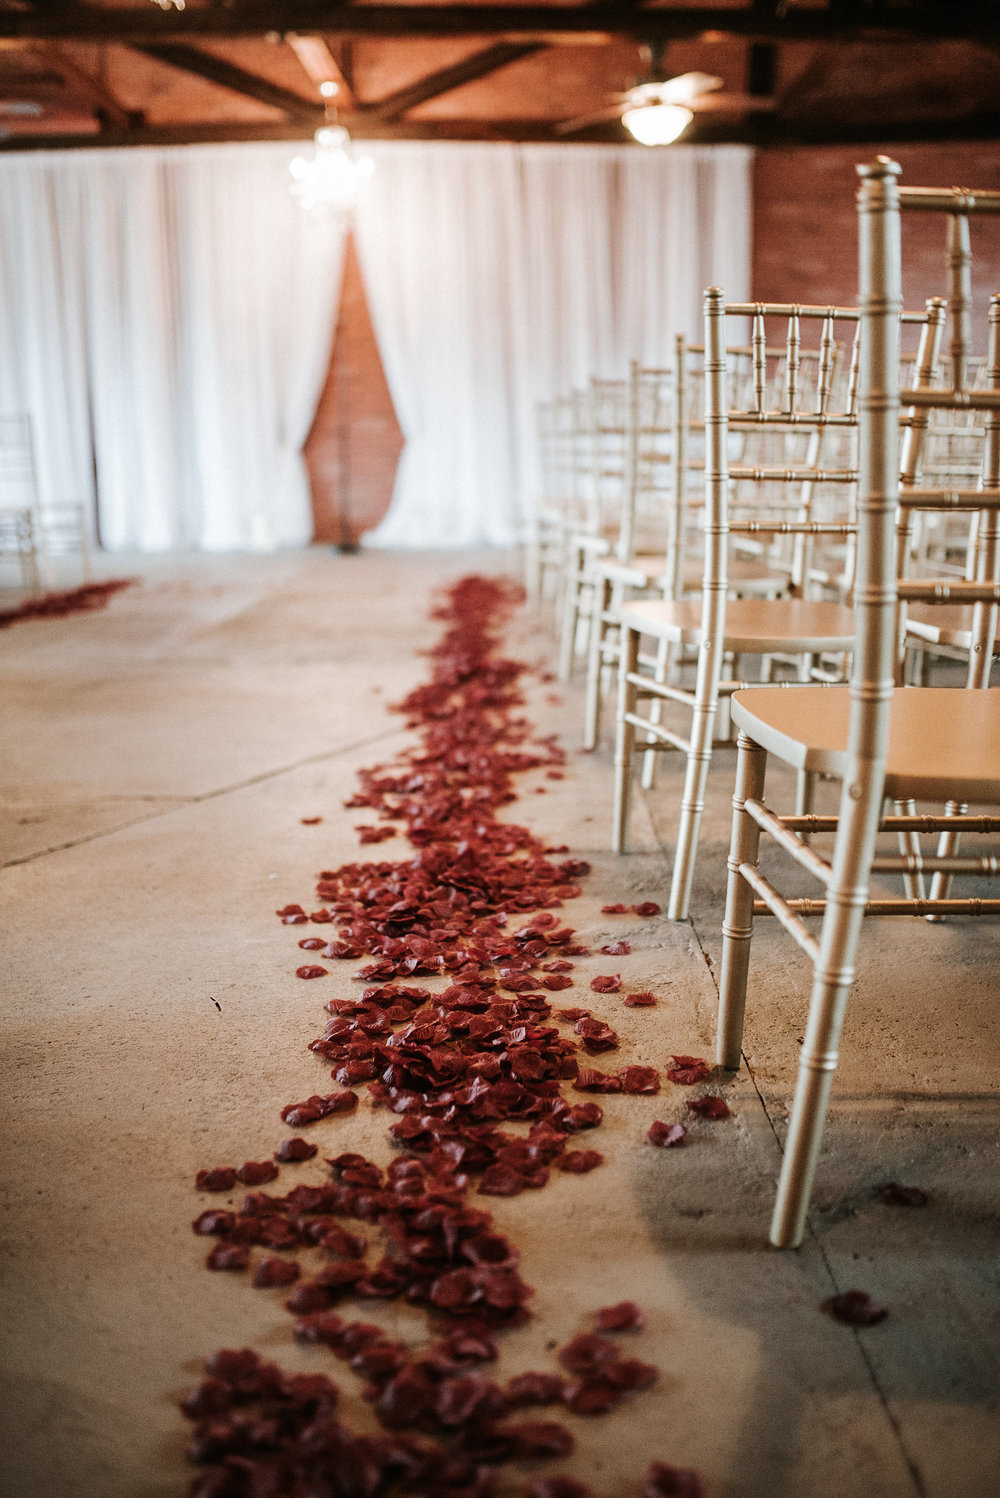 Rose petals on wedding aisle